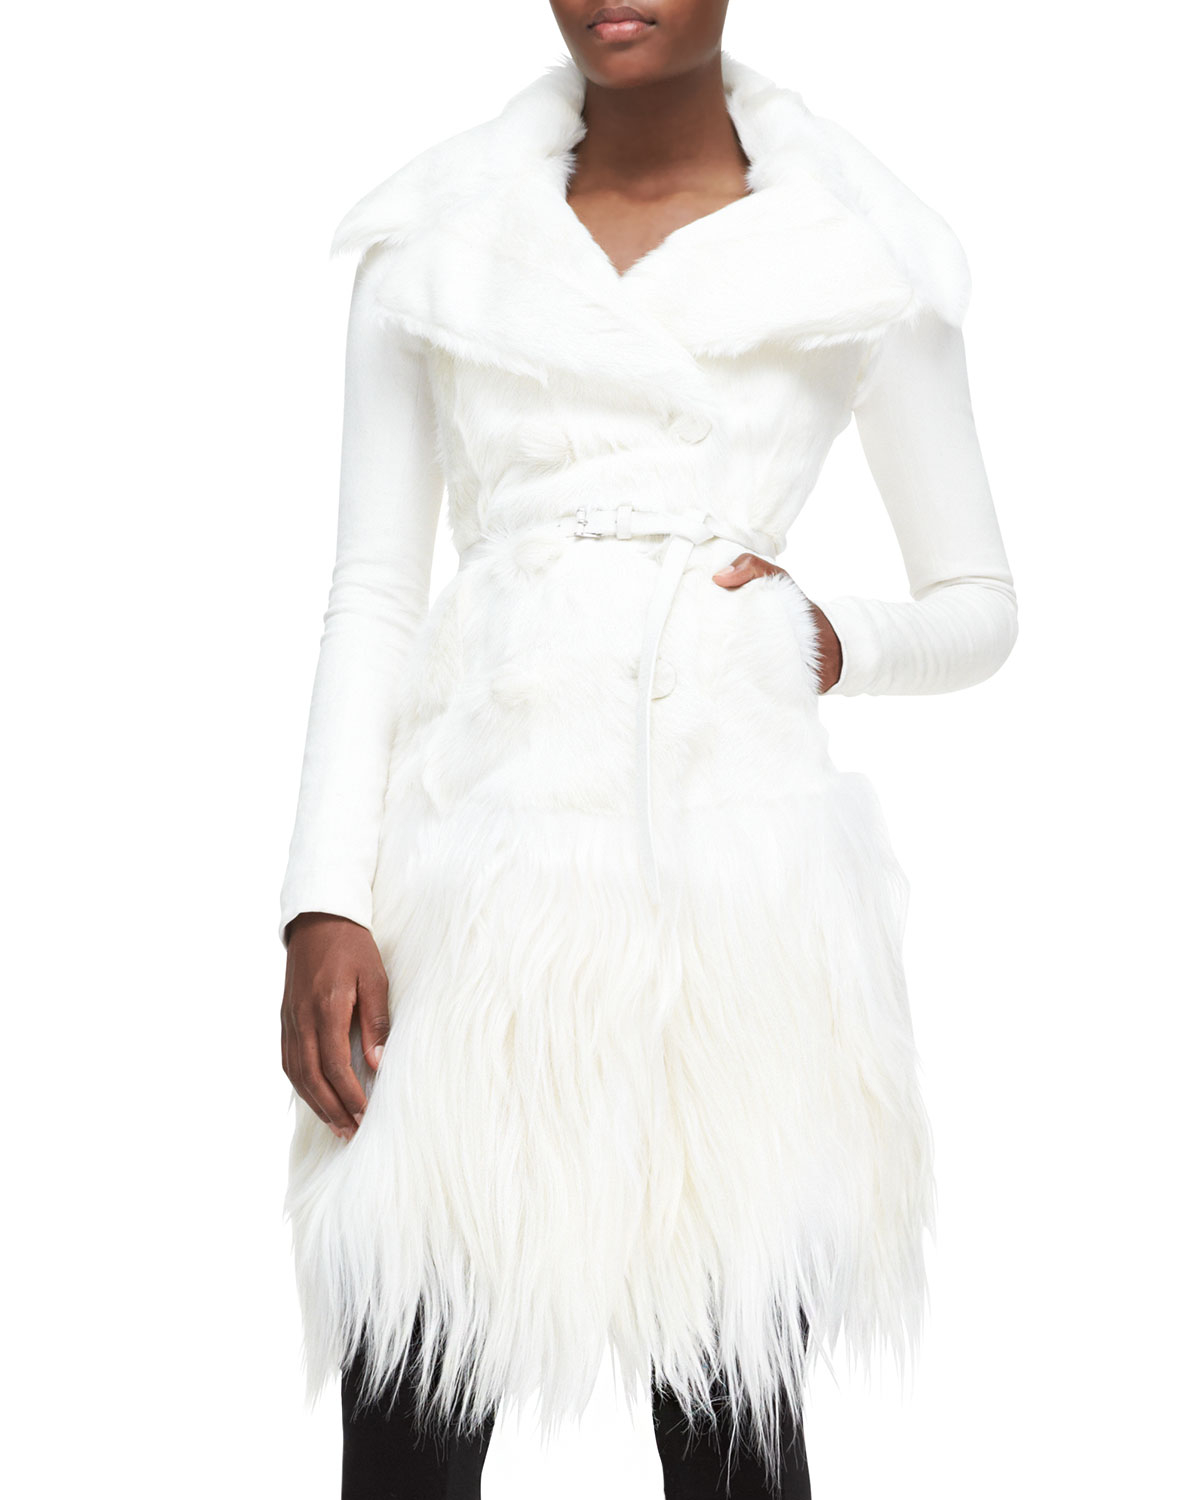 Donna karan Long Belted Goat Fur Jacket in White | Lyst